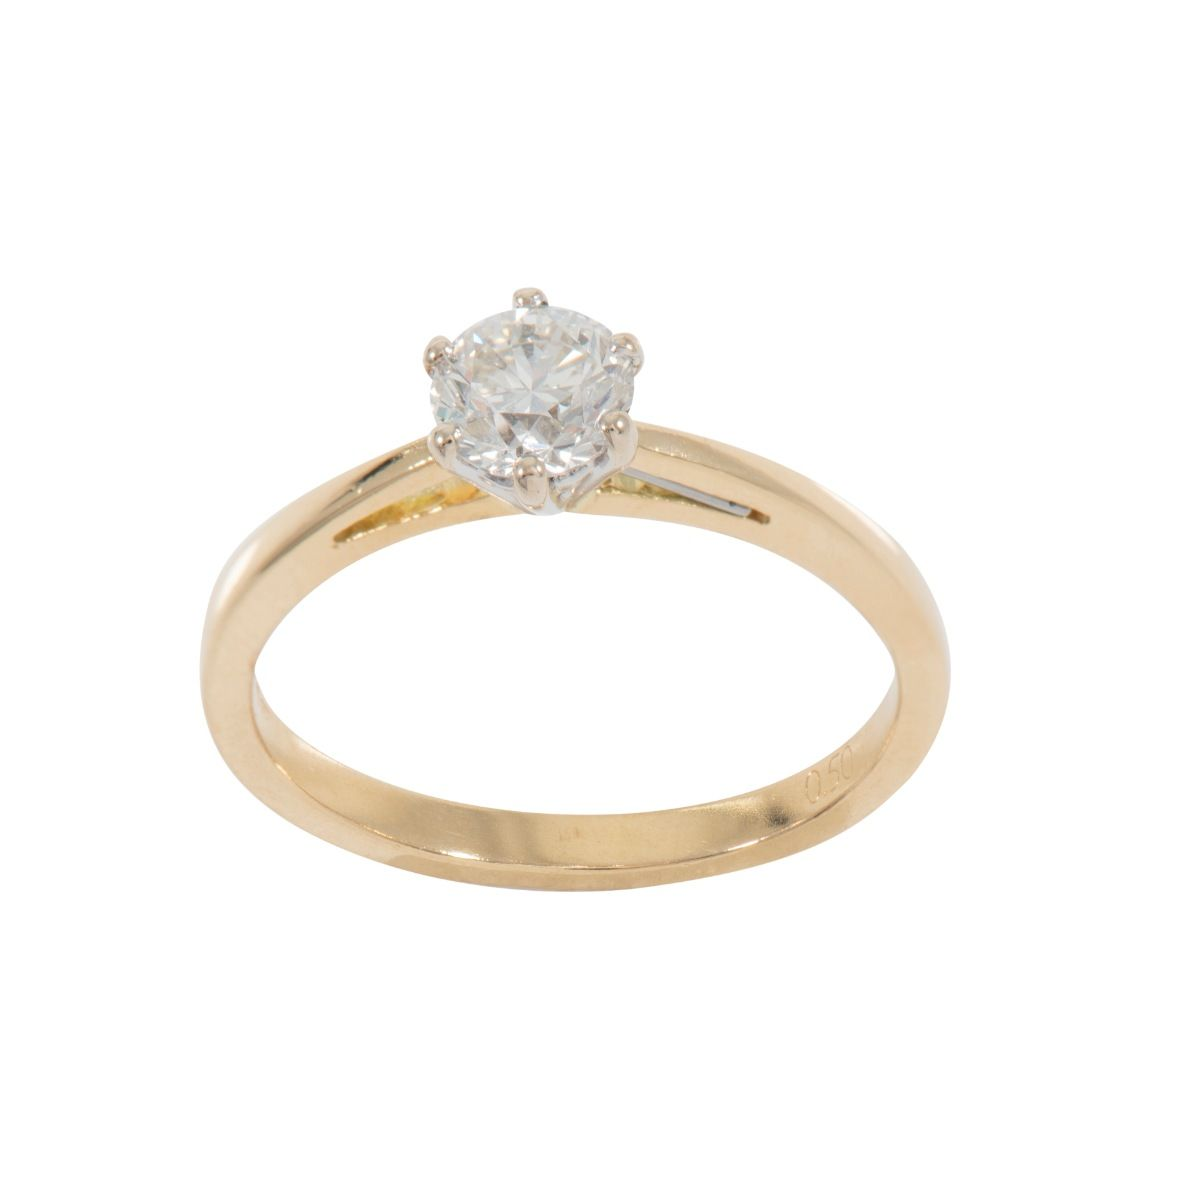 18ct Yellow Gold 0.50ct Round Brilliant Cut Diamond Solitaire Ring Ladies Size L